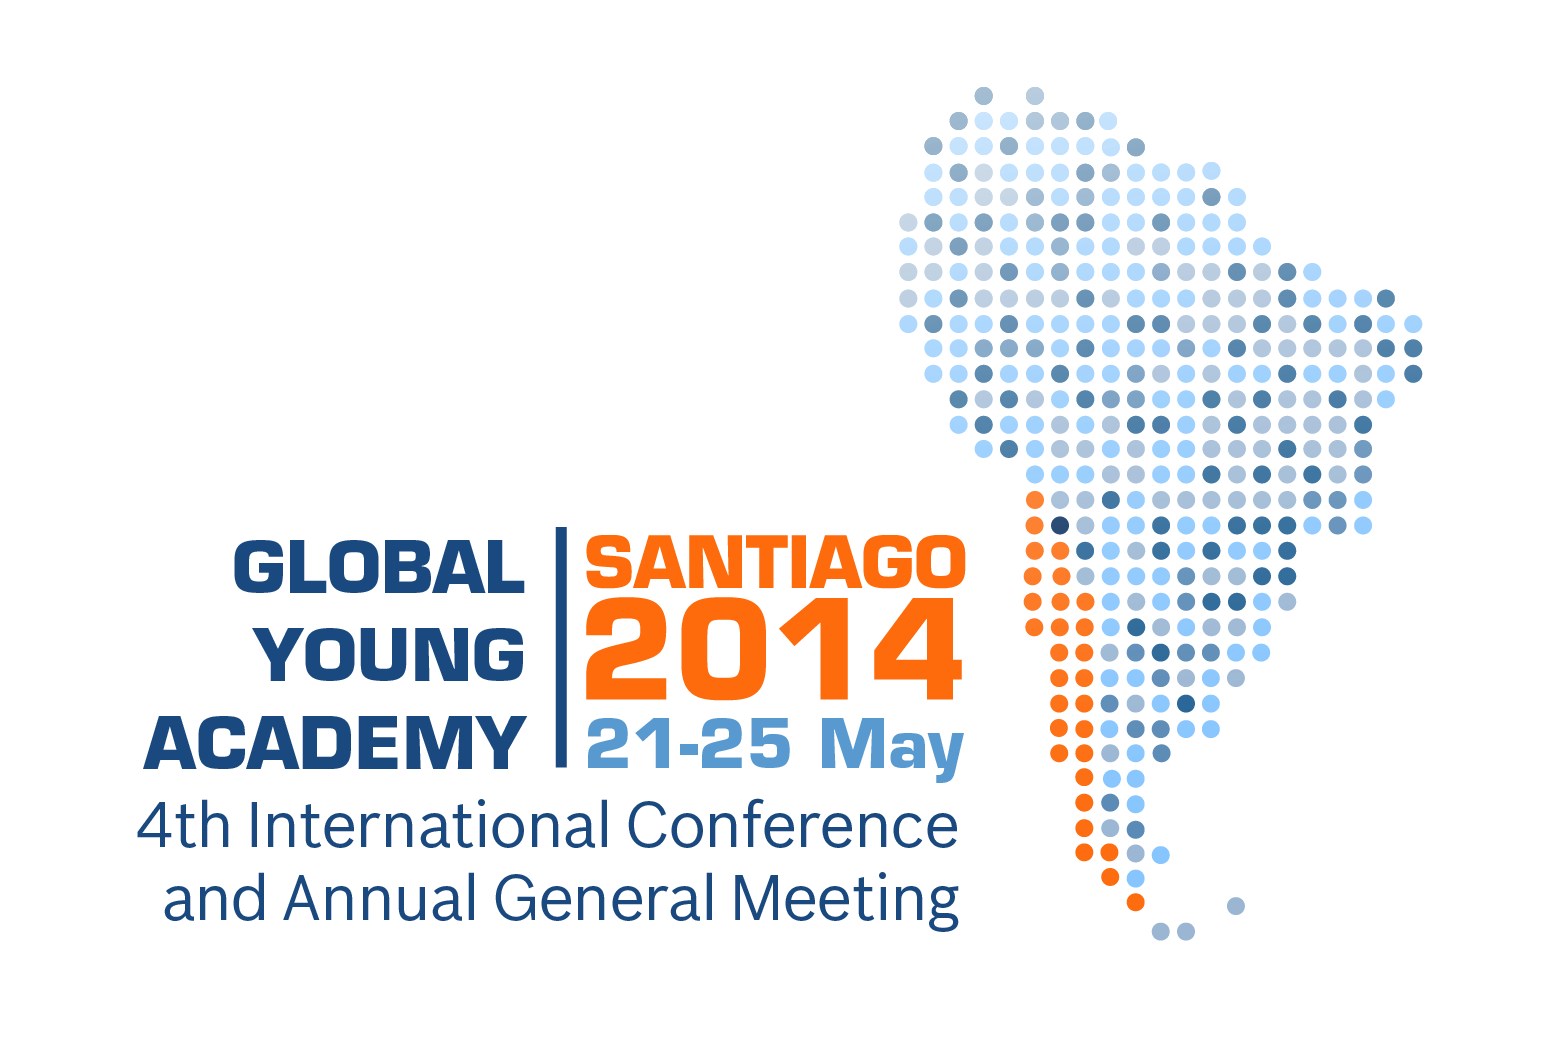 4th International Conference of Young Scientists and GYA Annual General Meeting 2014